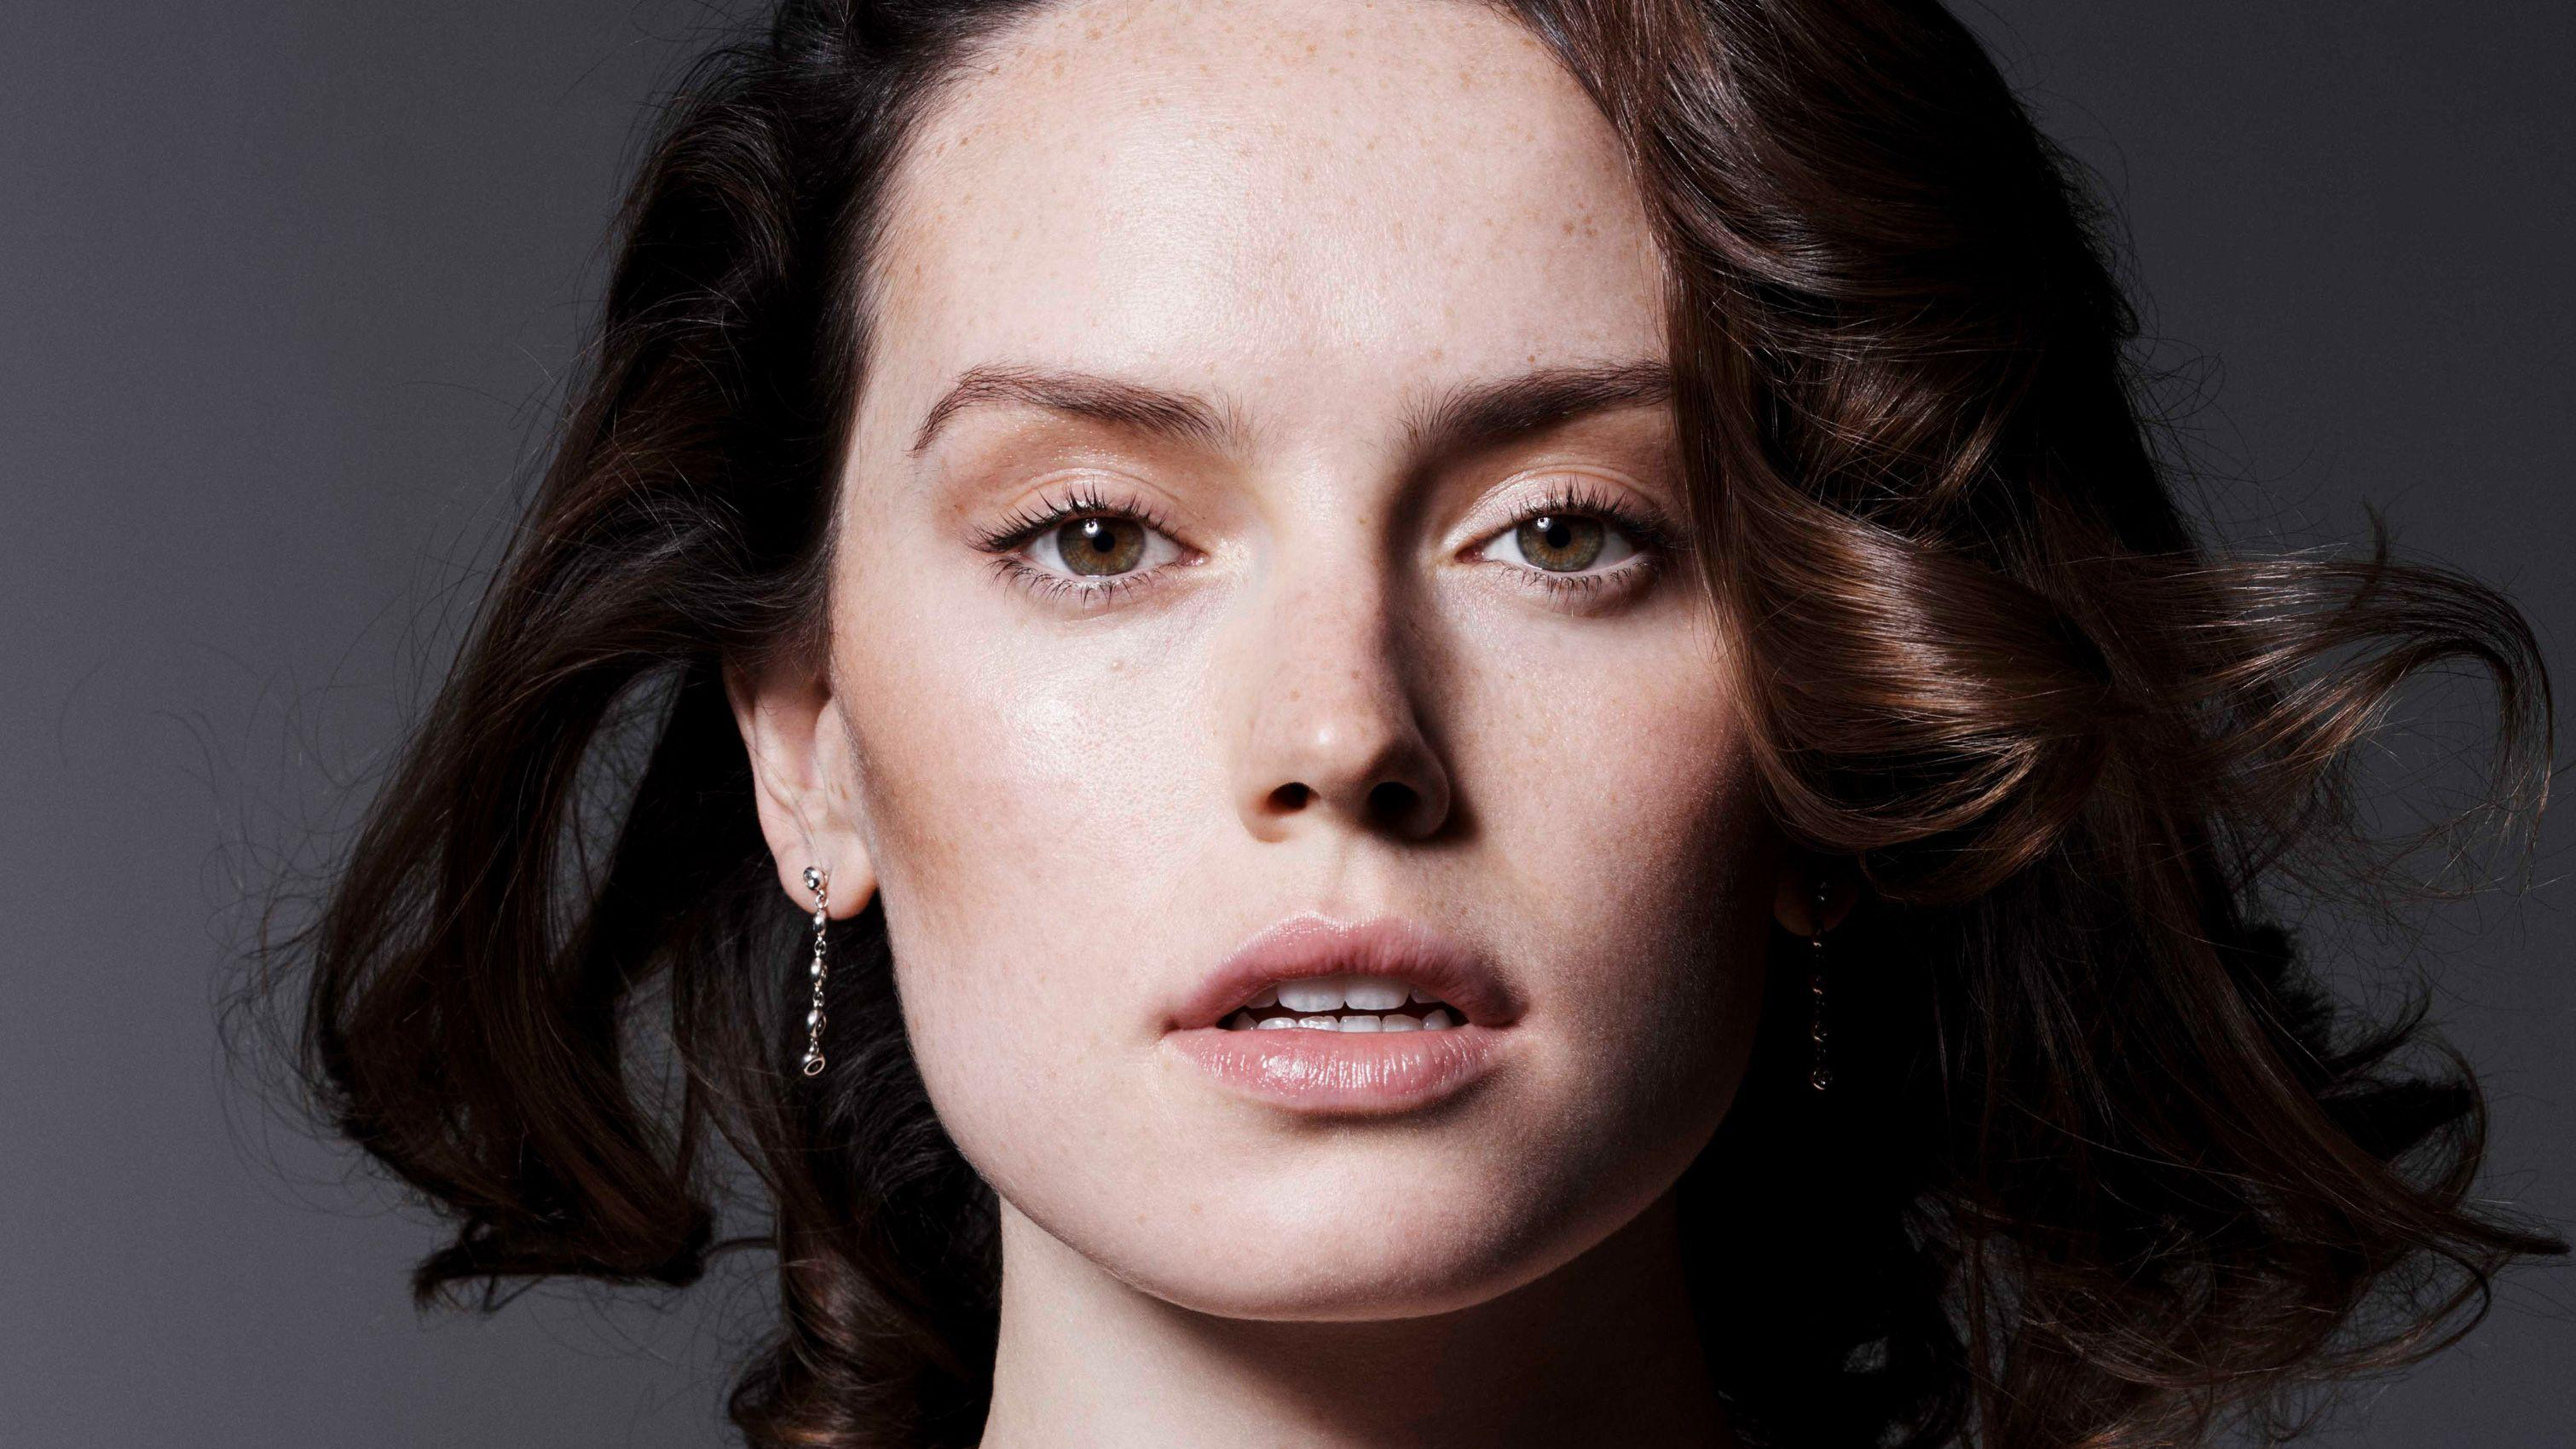 Daisy Ridley Closeup 2018, HD Celebrities, 4k Wallpapers, Images ...